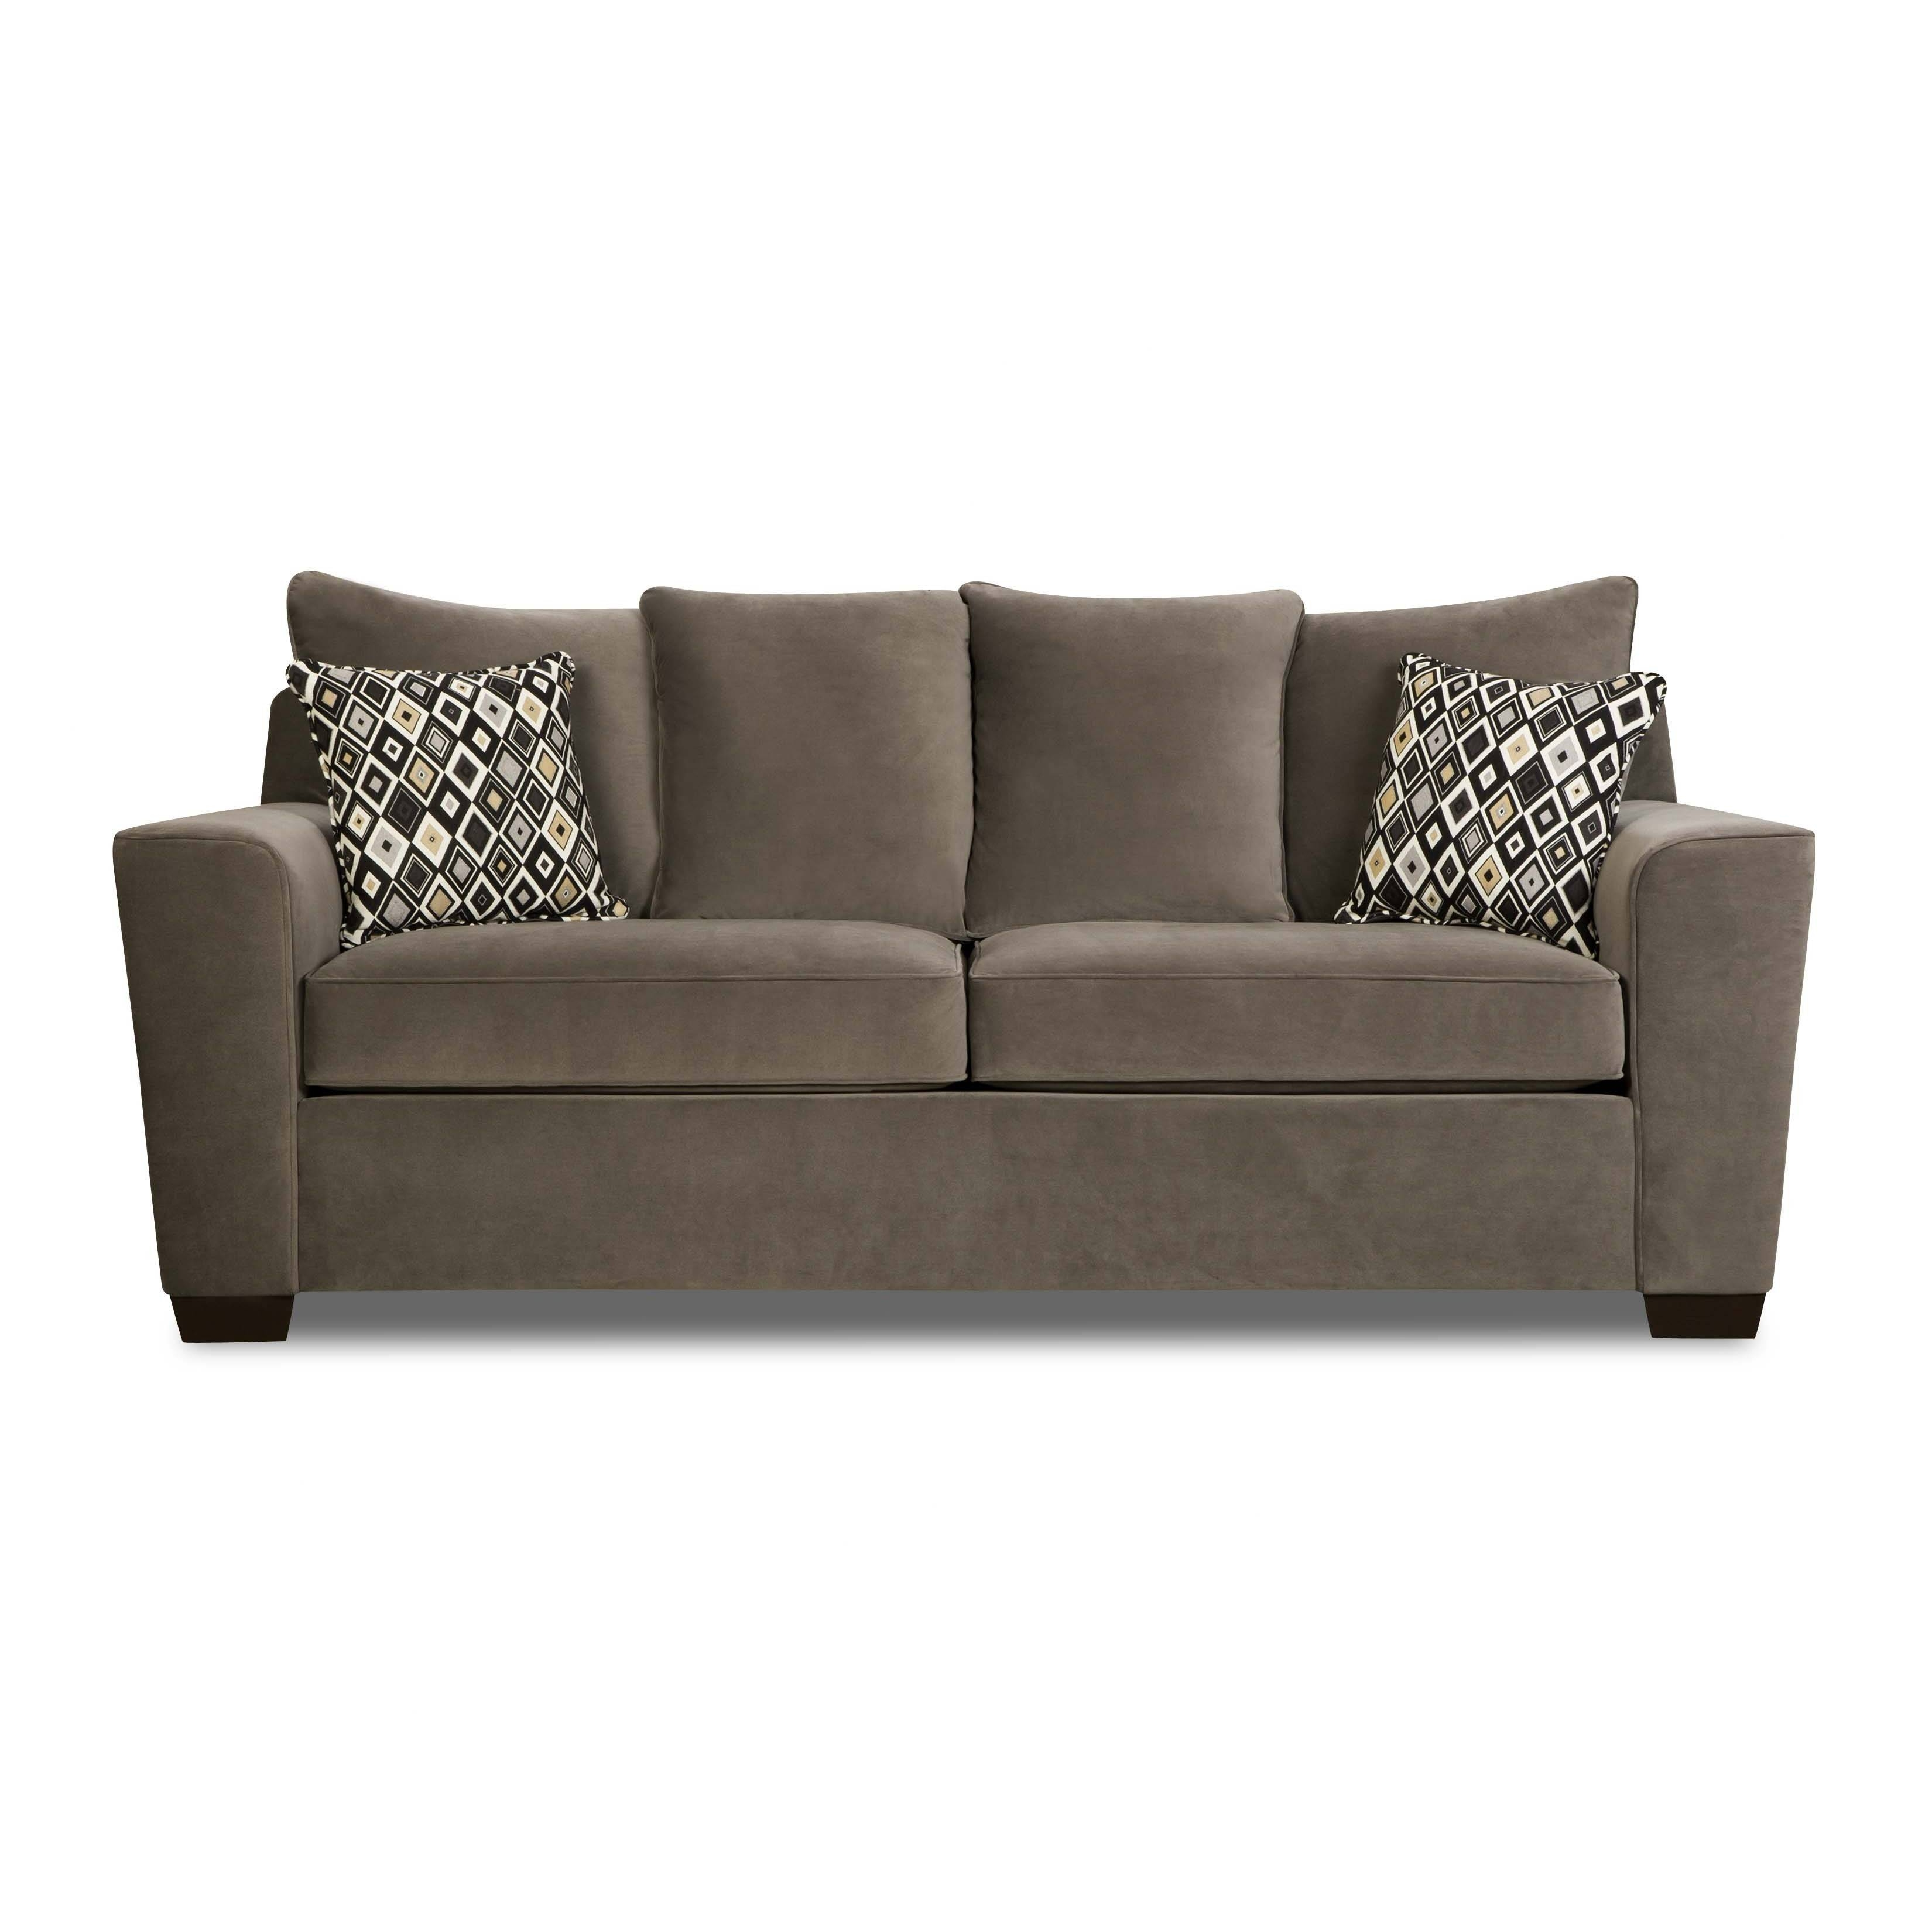 Astonishing Simmons Sleeper Sofa Queen 39 In Havertys Sleeper Sofa with regard to Simmons Sleeper Sofas (Image 1 of 15)